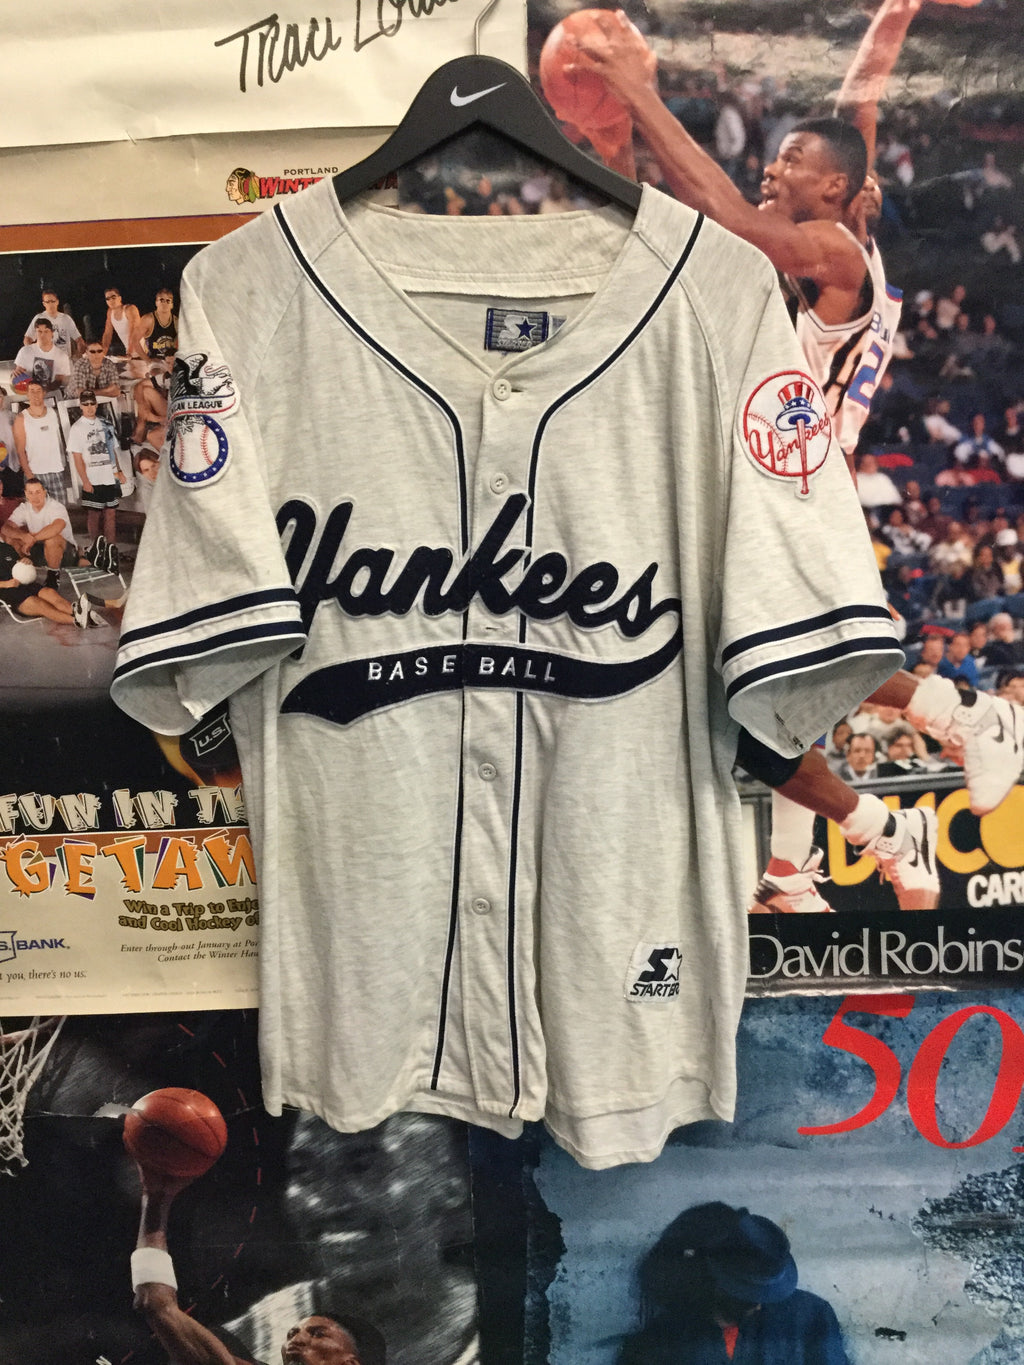 Starter New York Yankees Jersey Large - Decades of dope